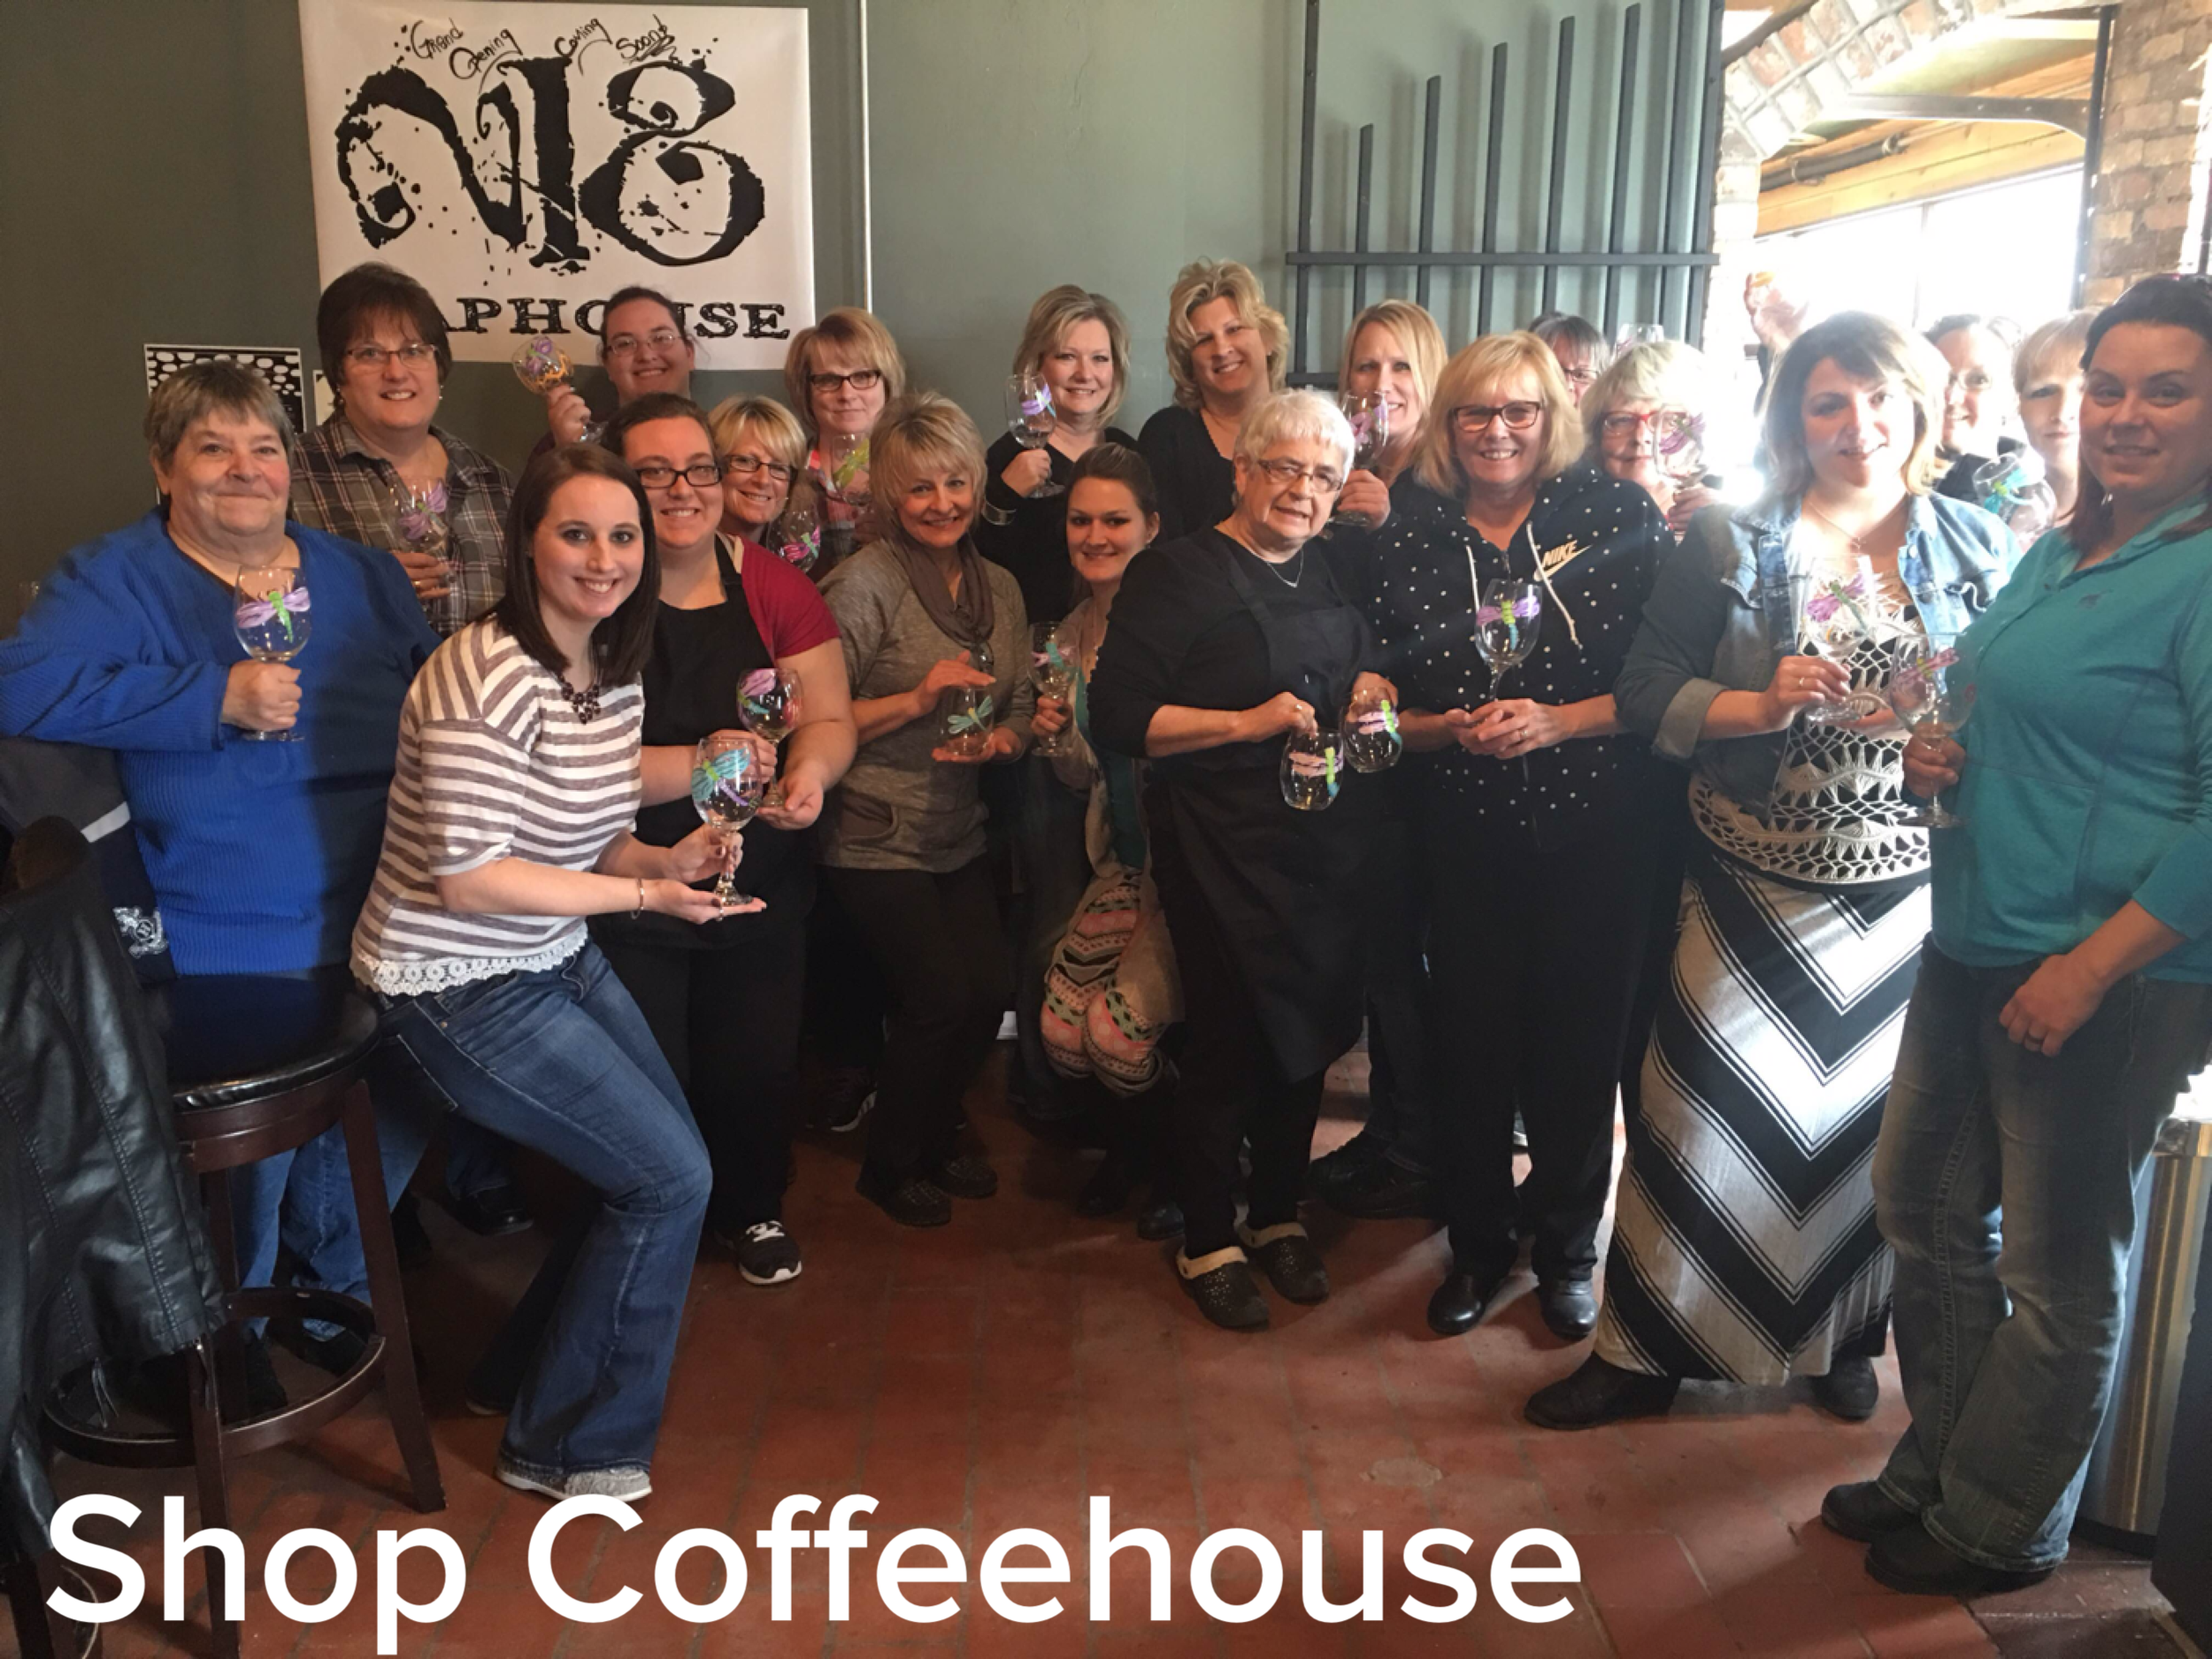 The Shop Coffeehouse wine glasses